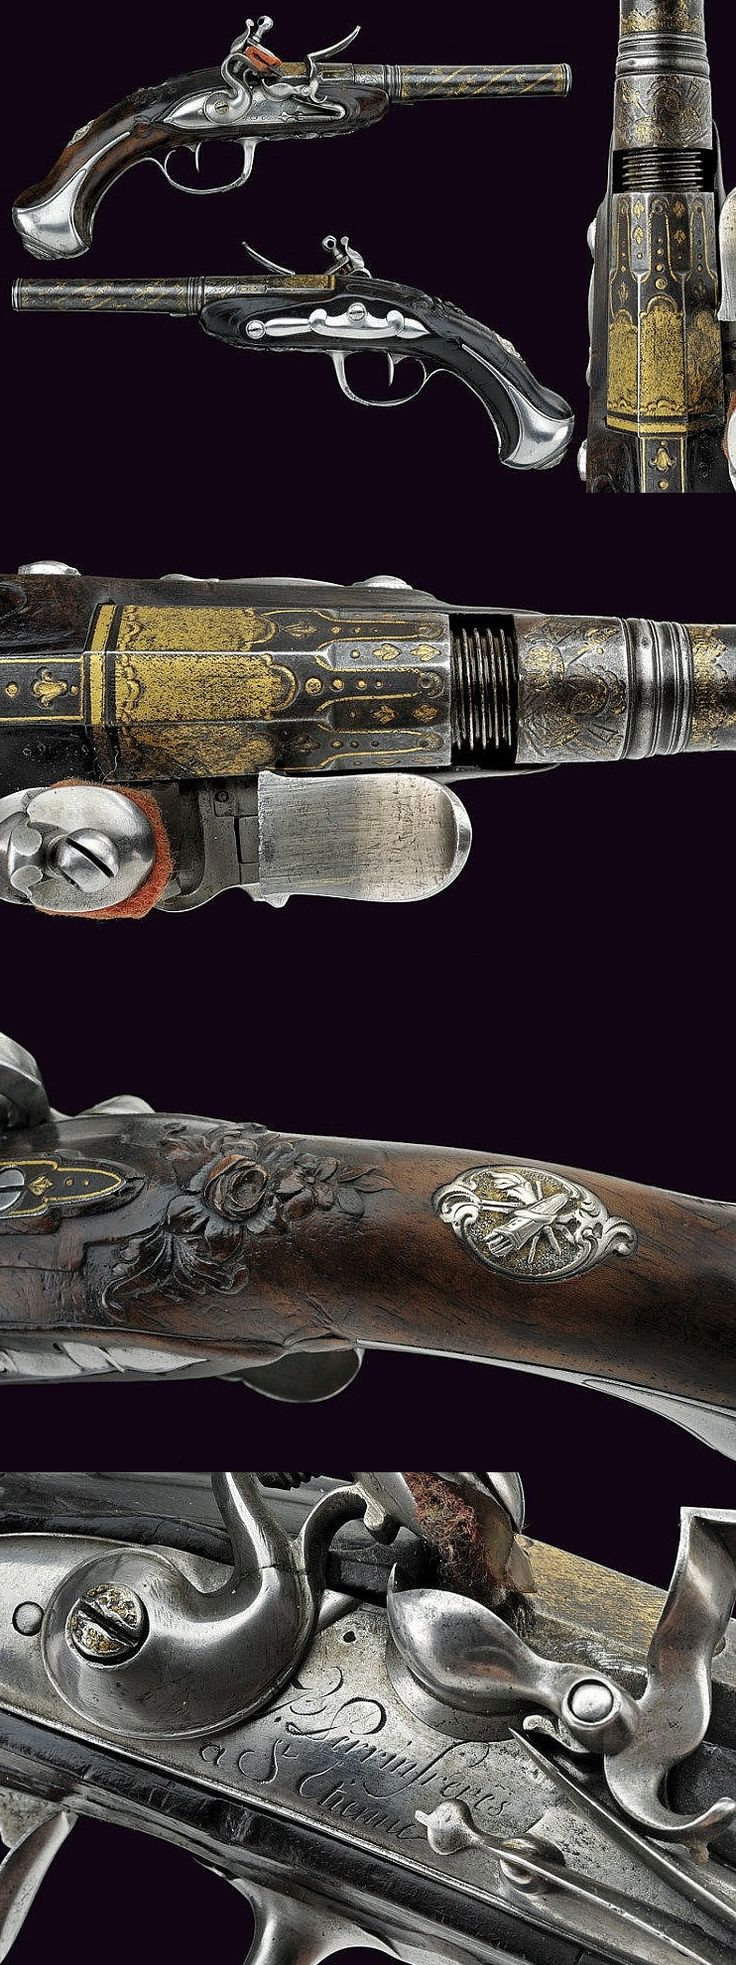 A fine pair of flintlock travelling pistols by Perrin Freres, France, 19th century.